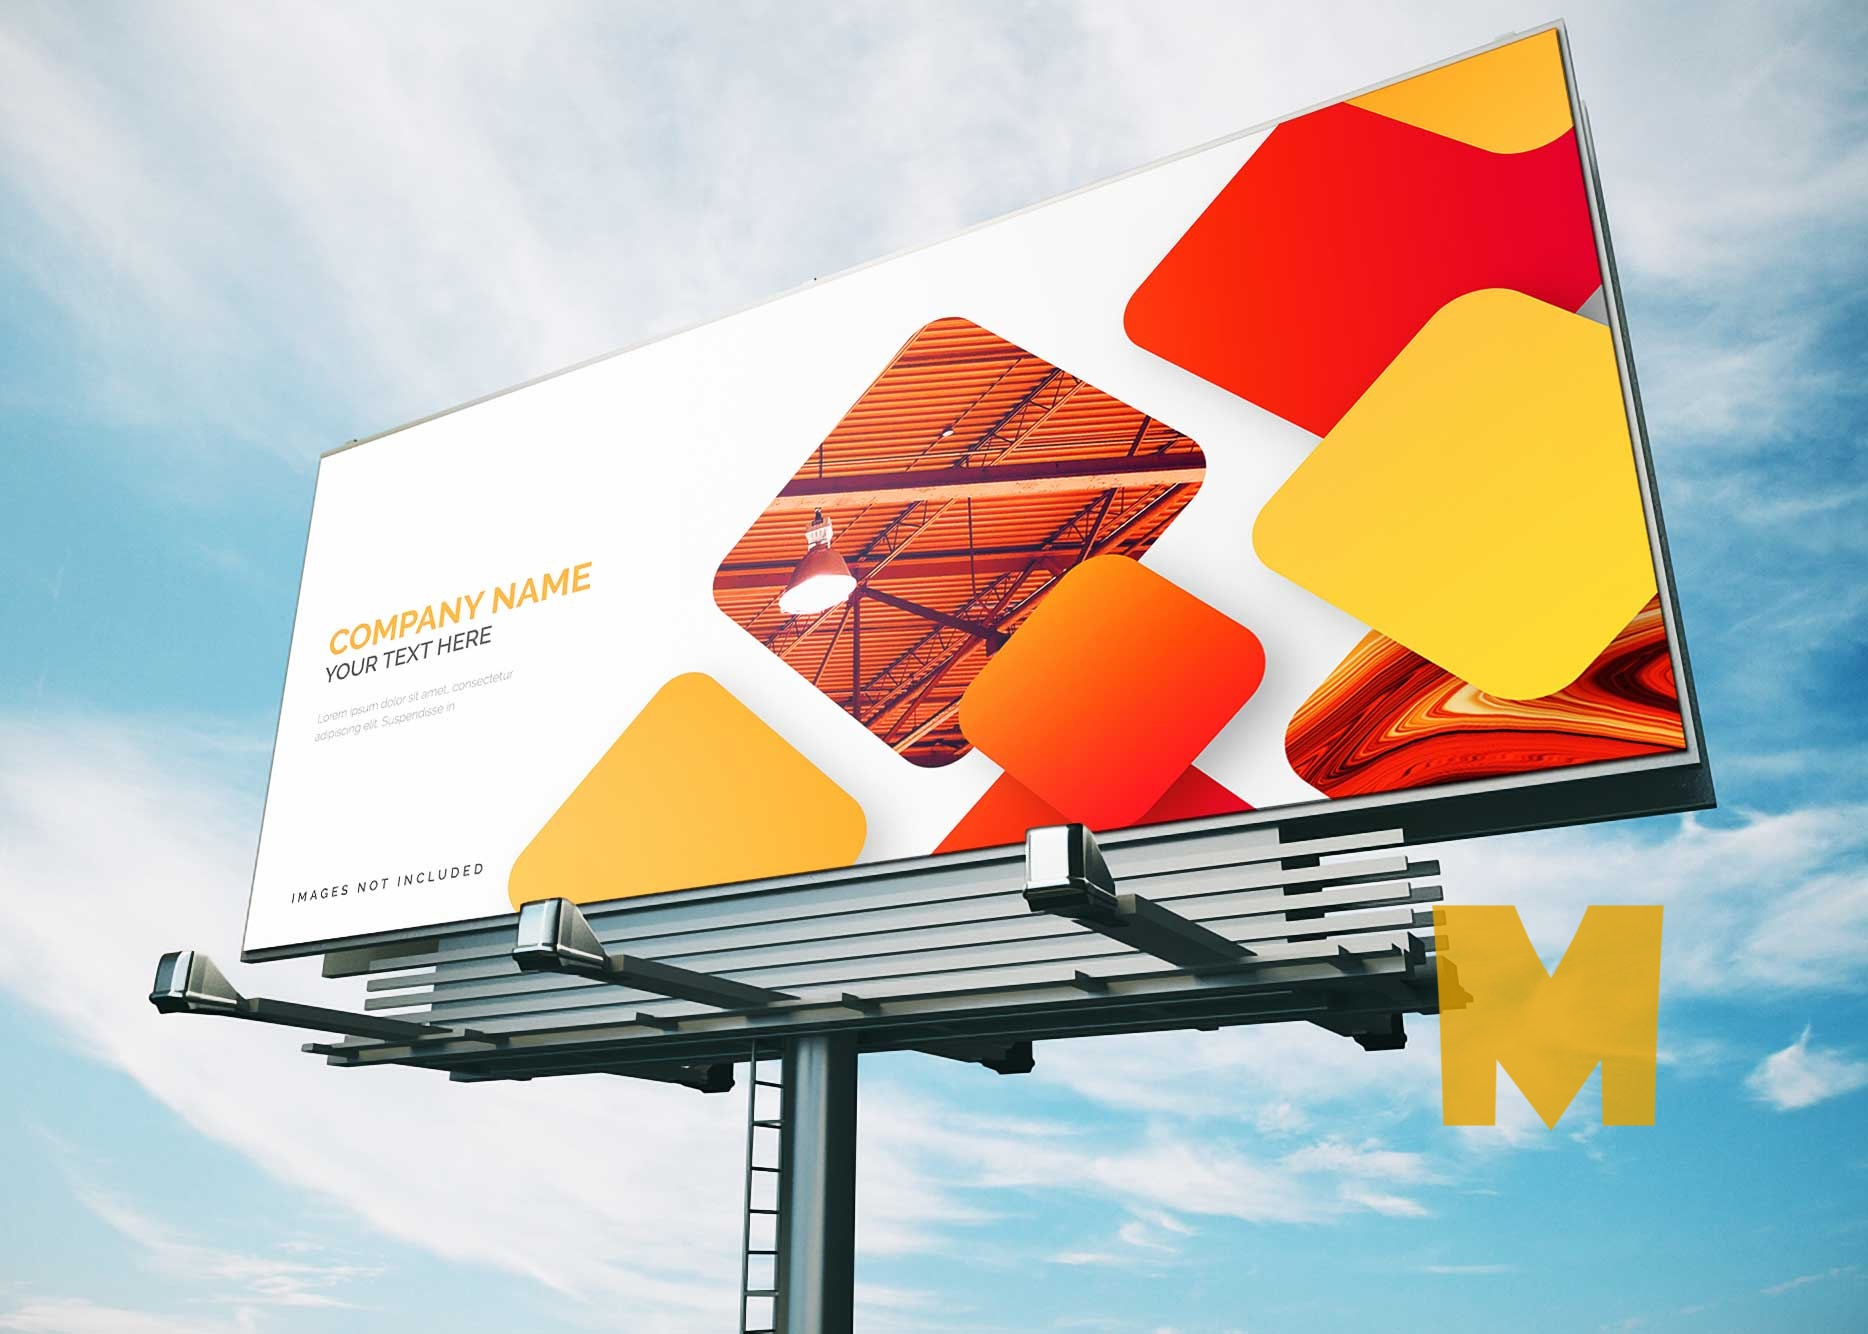 FreFree Street Sun Light Billboard Mockupe Street Sun Light Billboard Mockup